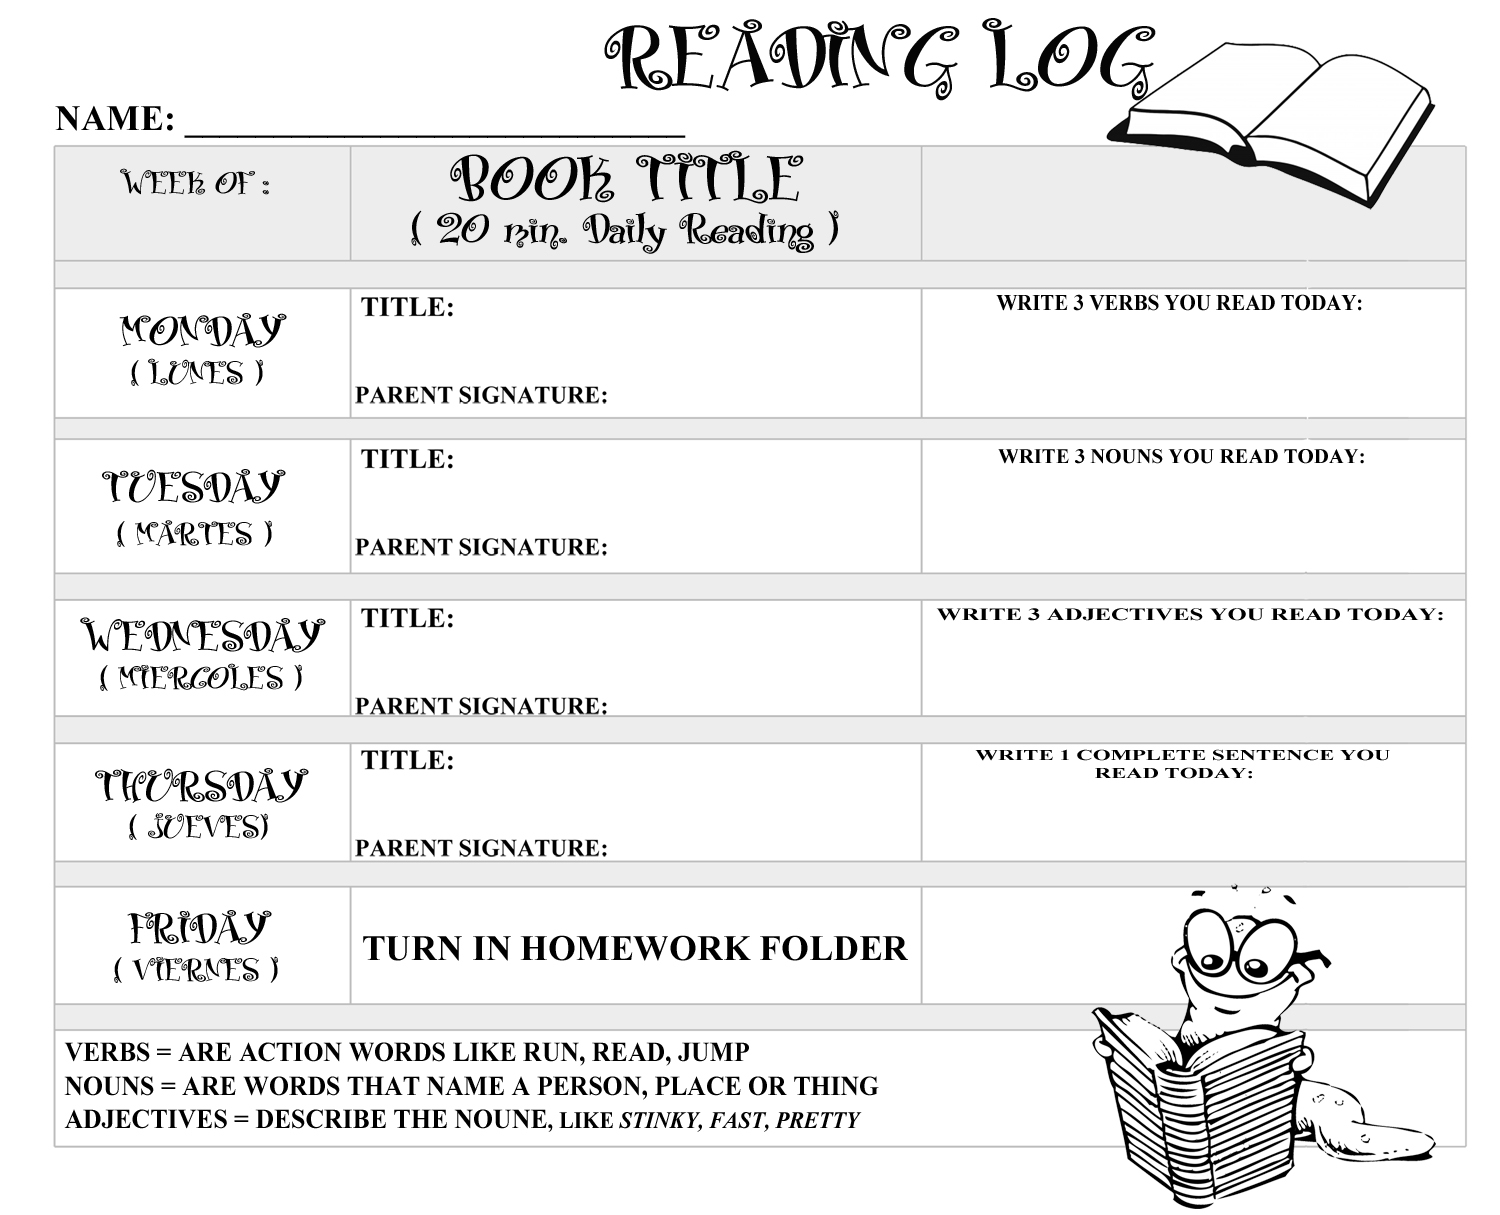 reading log with summary template - printable reading logs with parent signature best photos